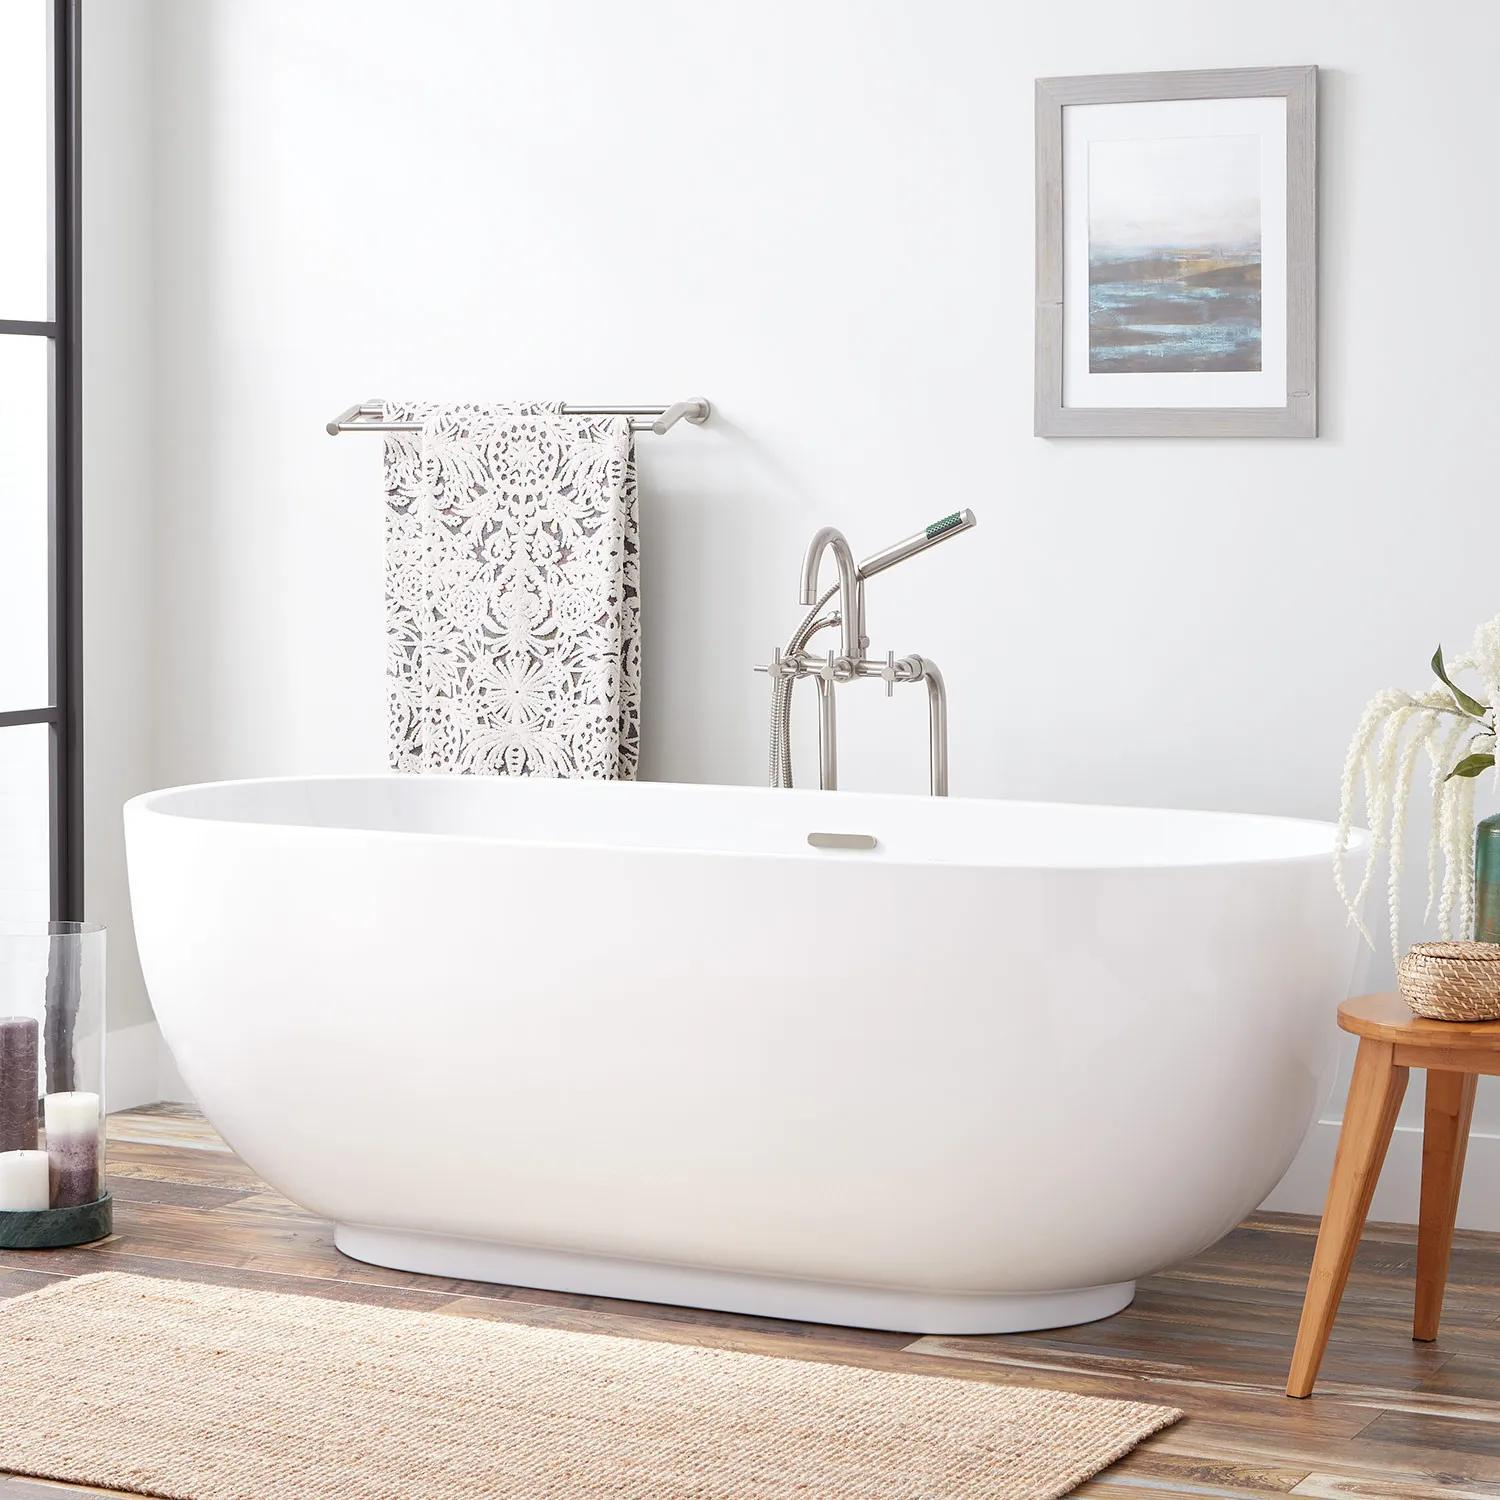 71 Hazel Acrylic Freestanding Tub Bathroom